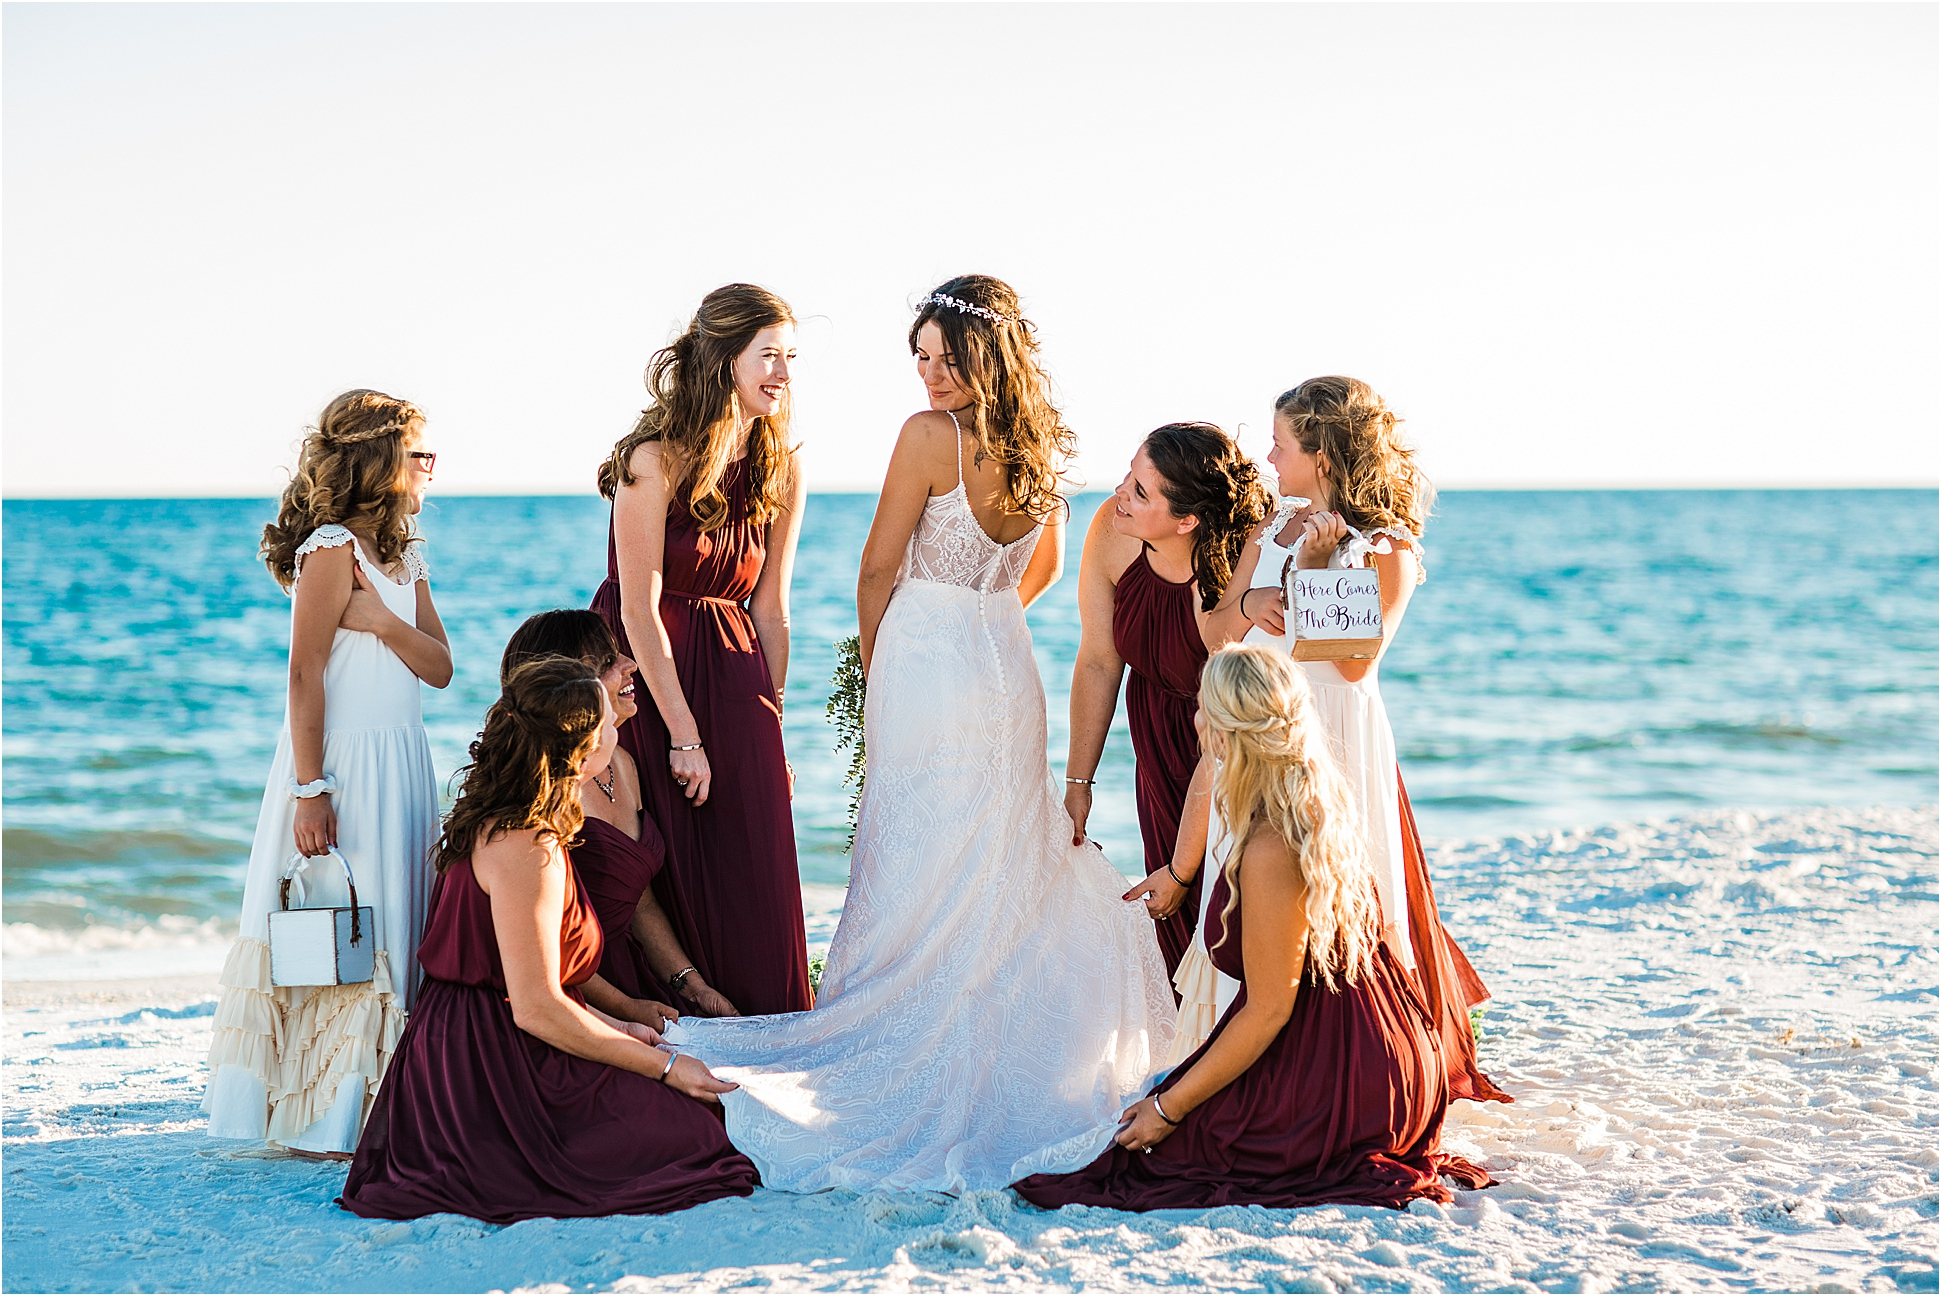 Bridal Party Fun Pictures Ideas